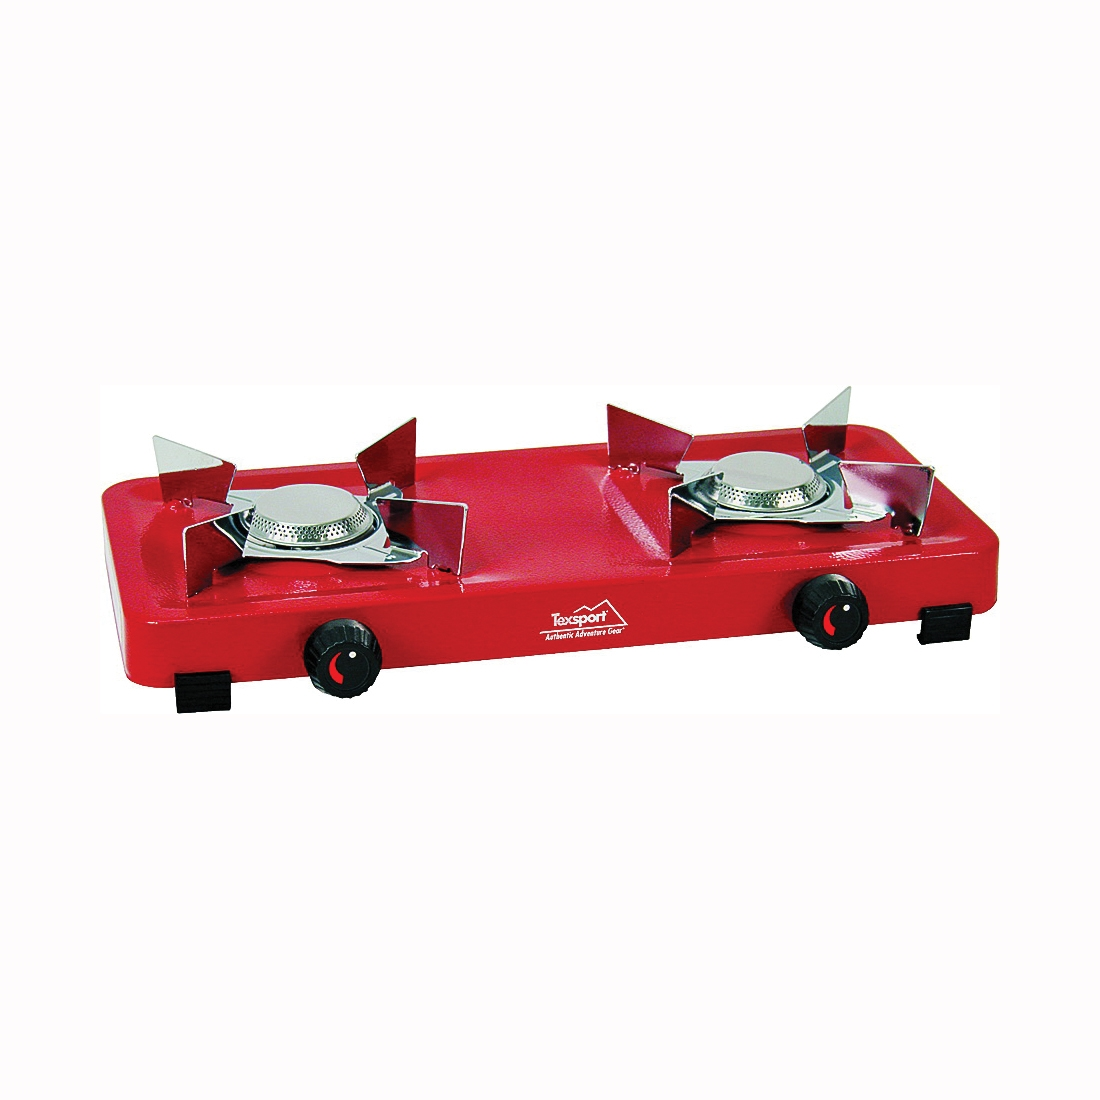 Picture of Texsport 14205 Two Burner Stove, 5000 Btu, Steel